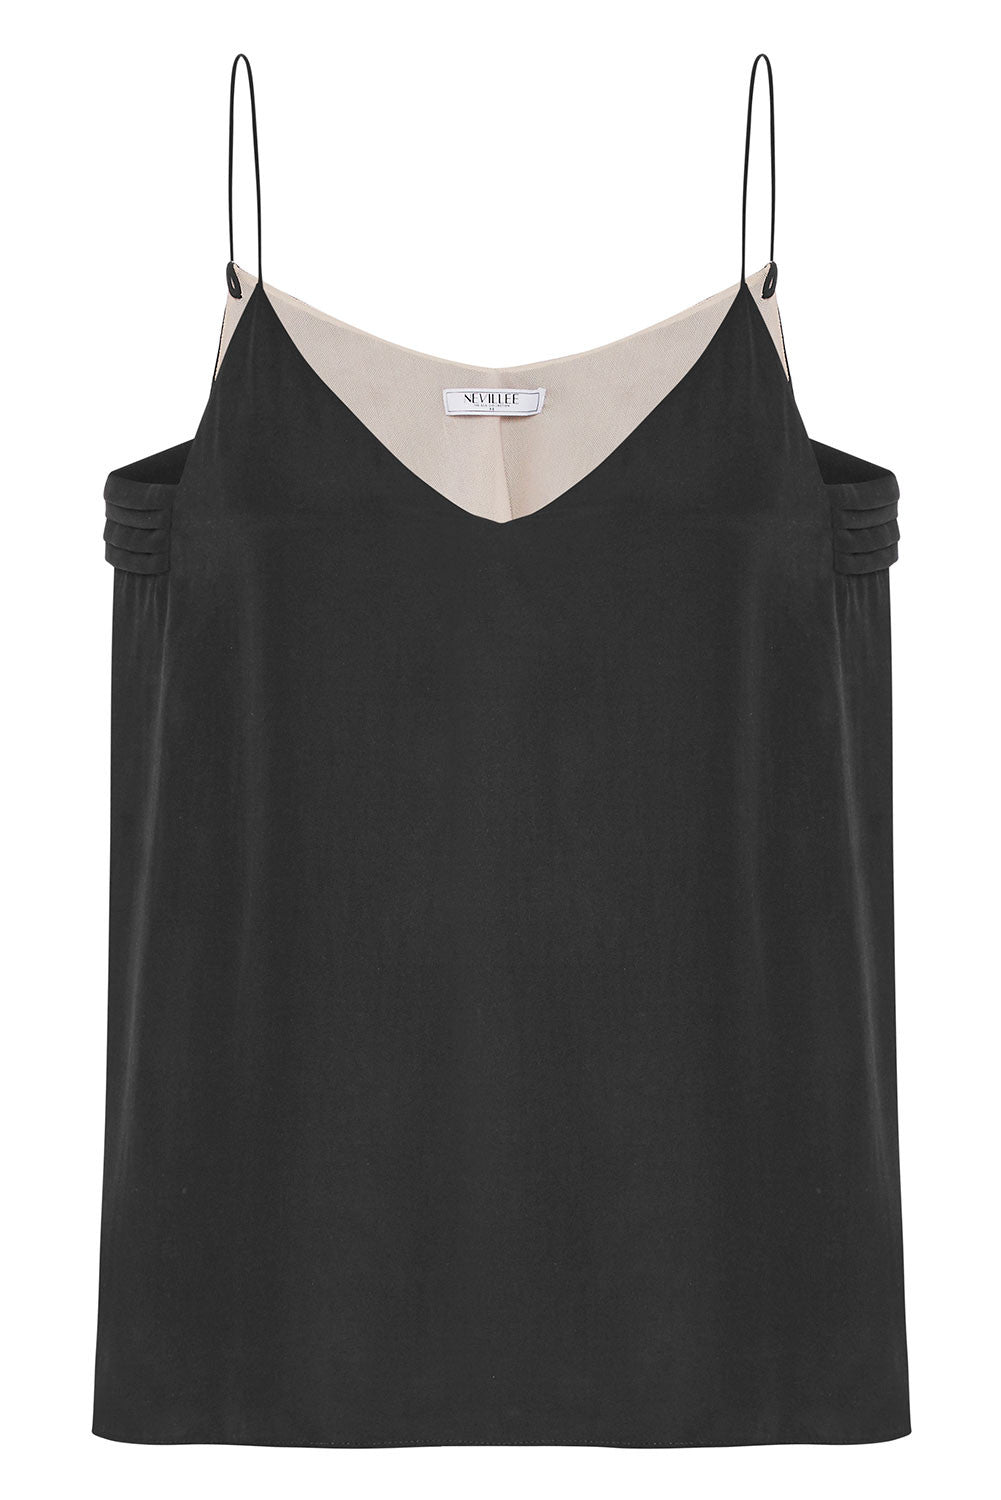 THE SLIP ON CAMISOLE - BLACKSTONE